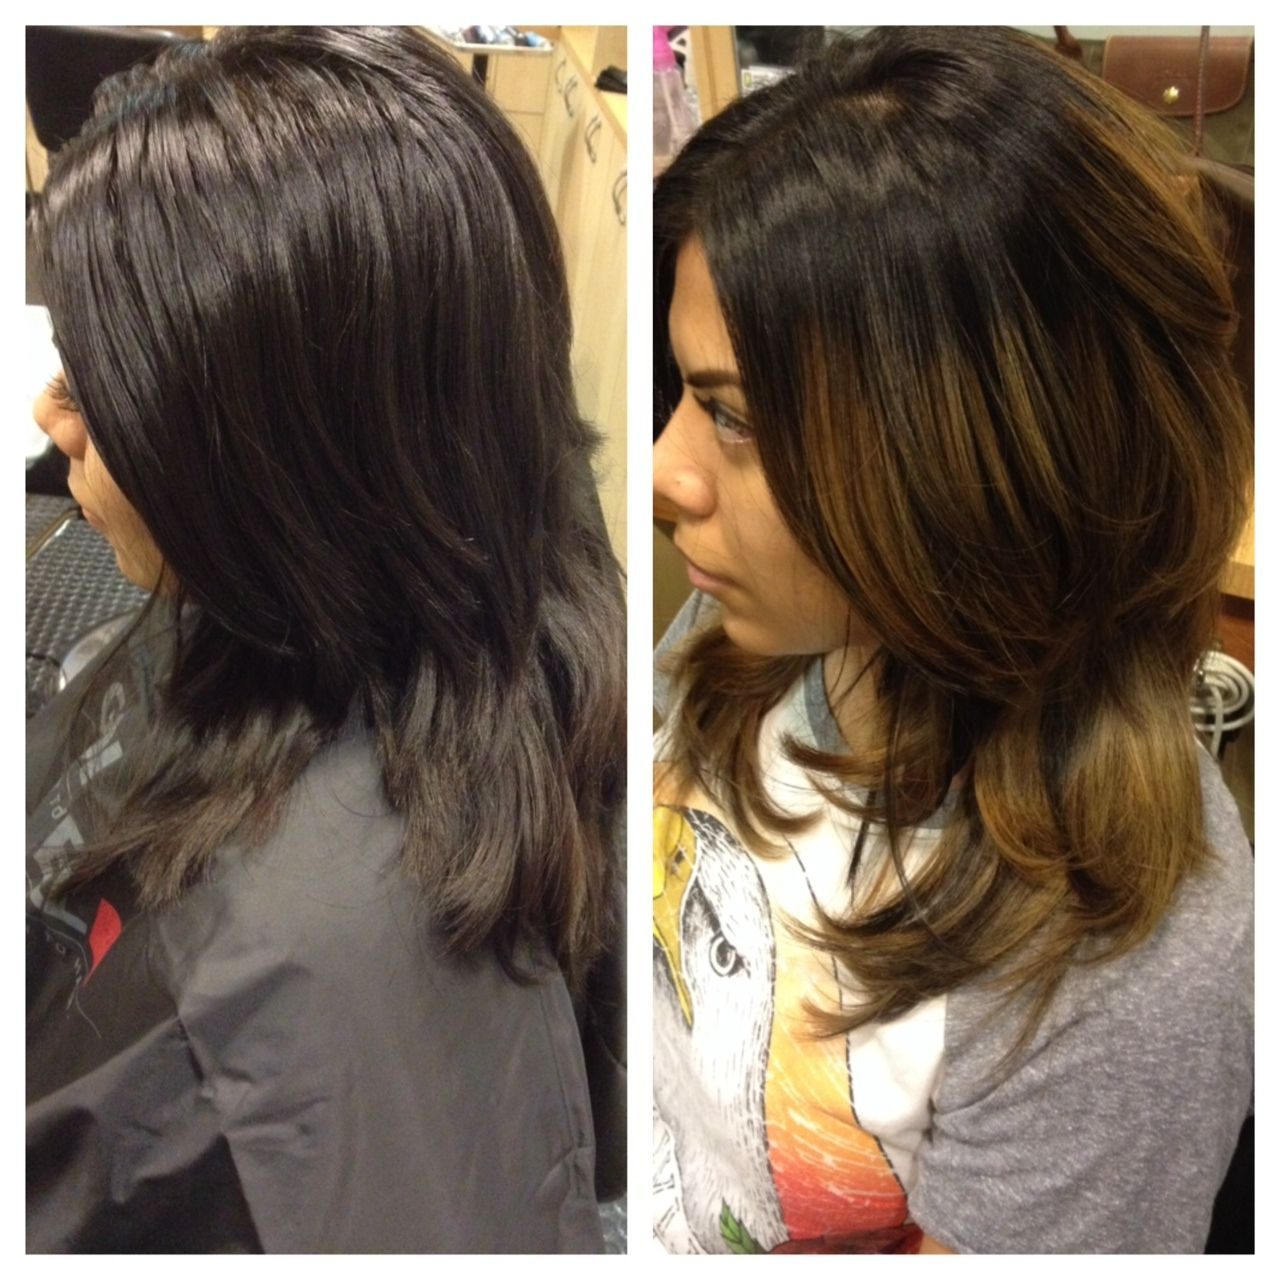 Ombr Haircut Blowout And Style By Kara Ombre Highlight